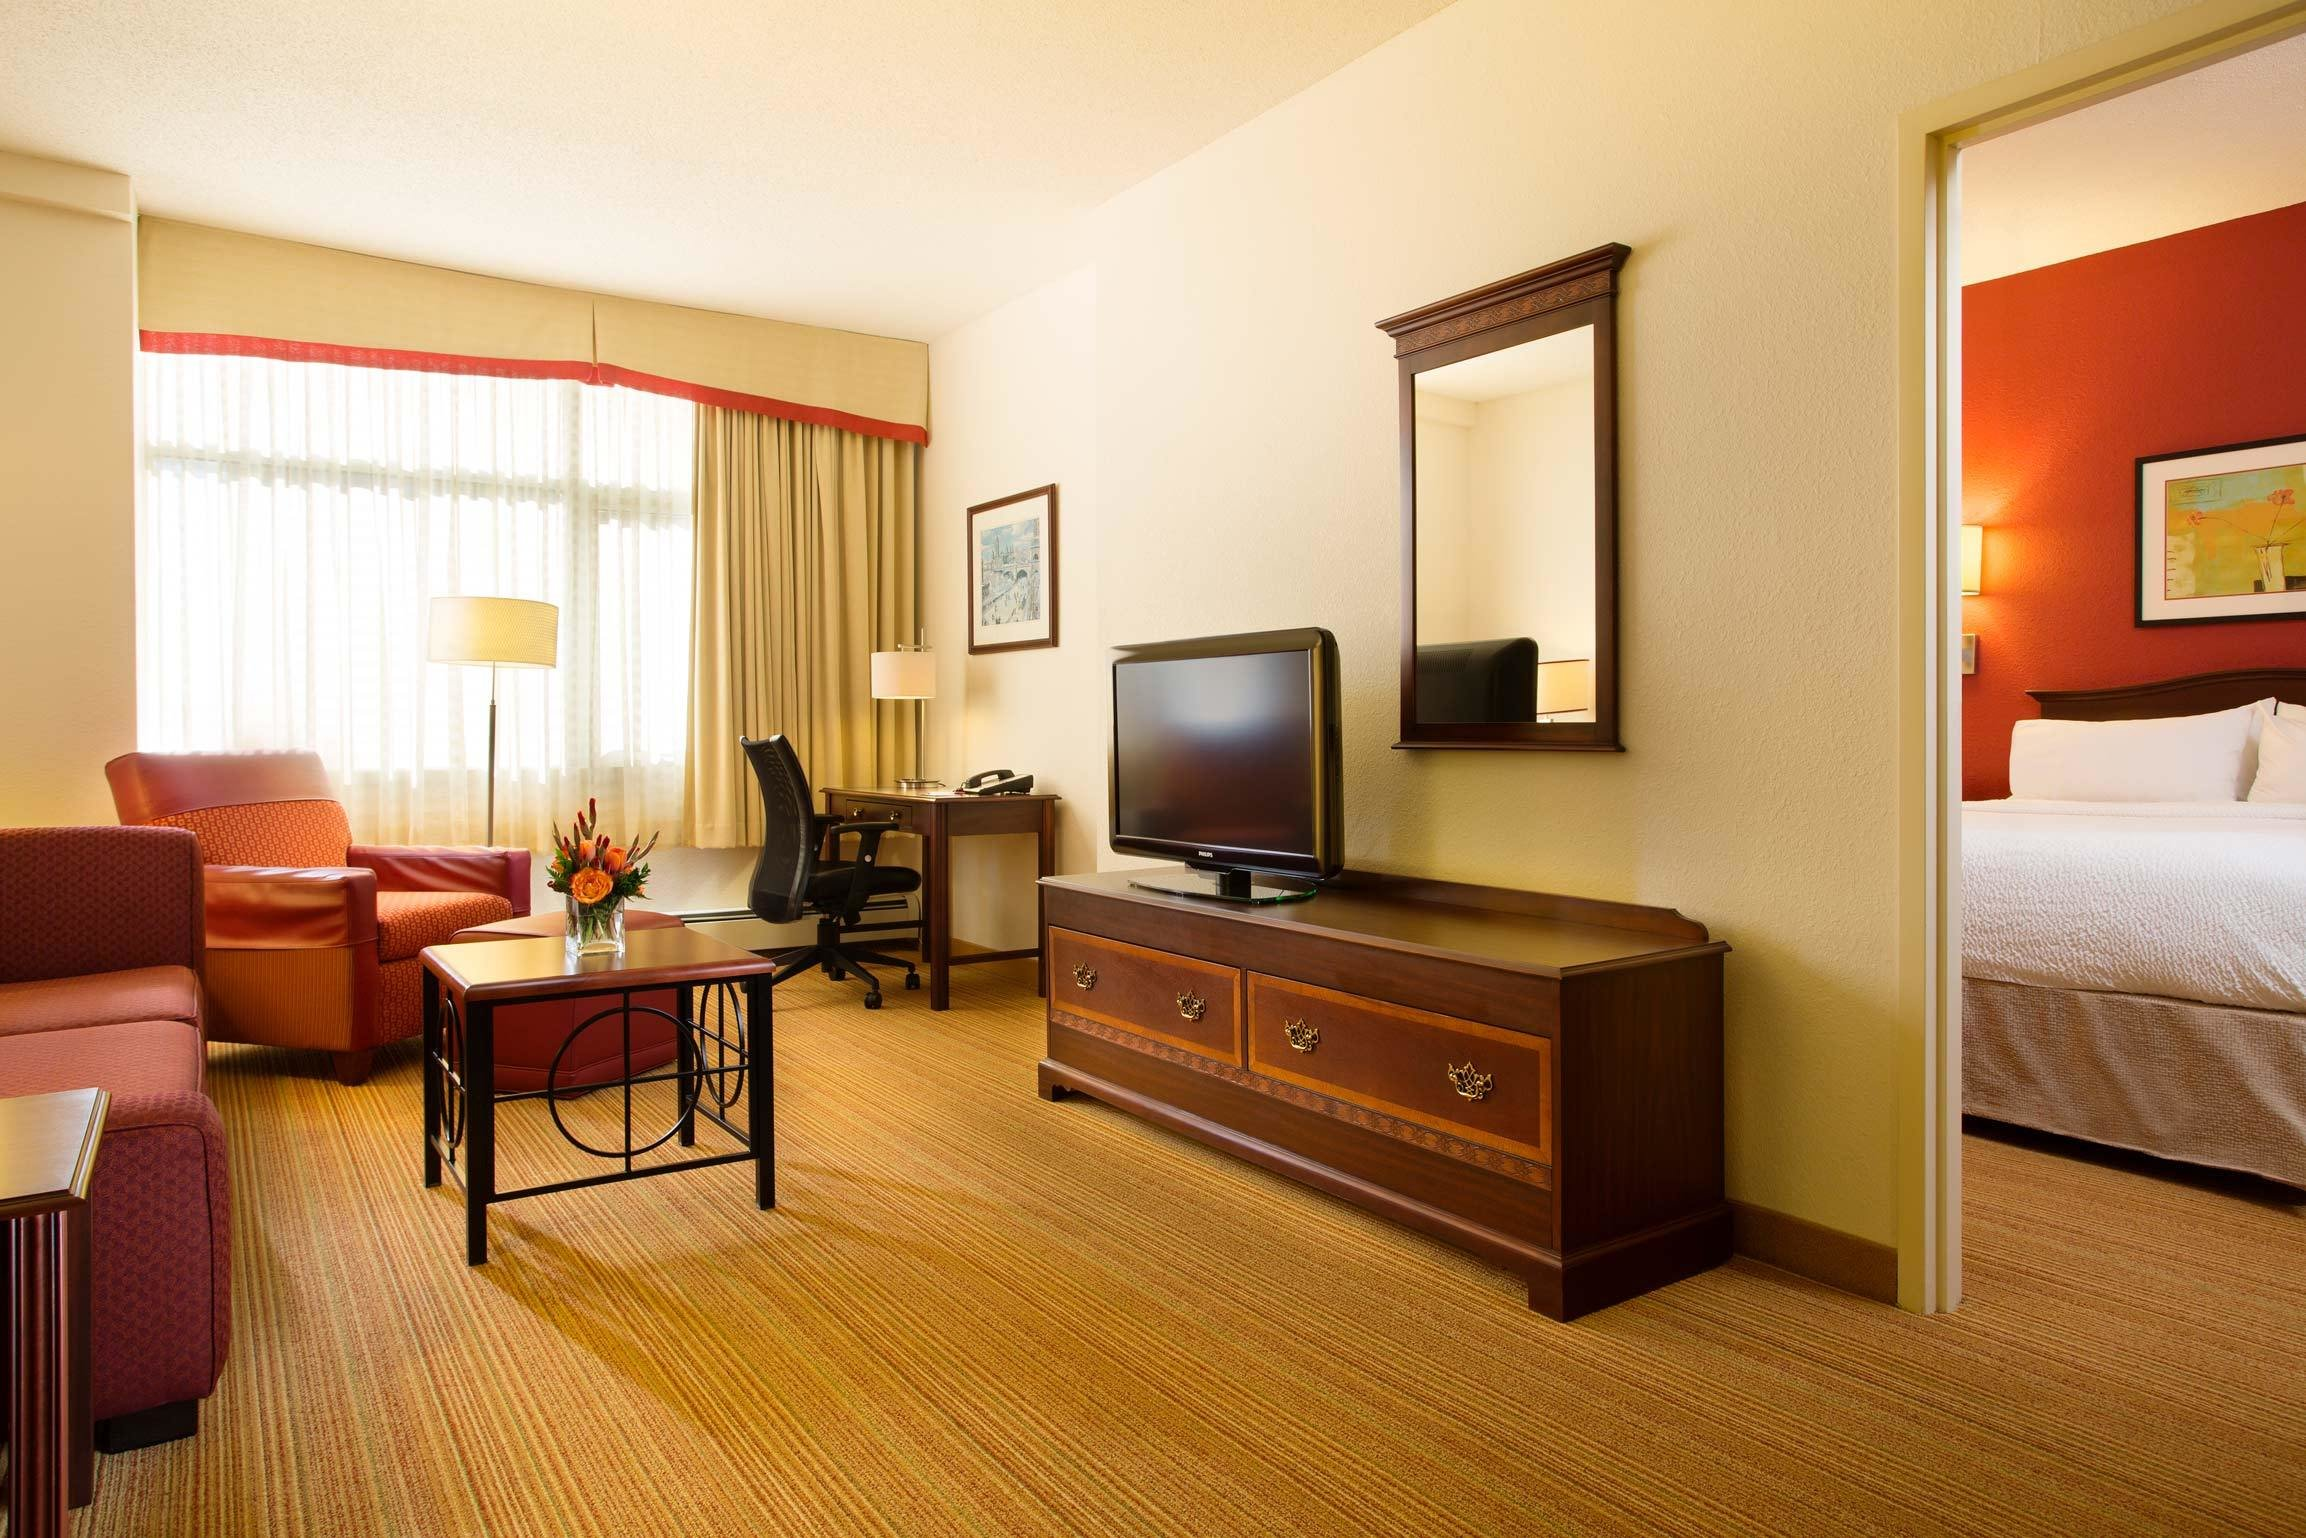 Best Short Long Term Stay Hotel Suites With Kitchens Downtown Ottawa With Pictures